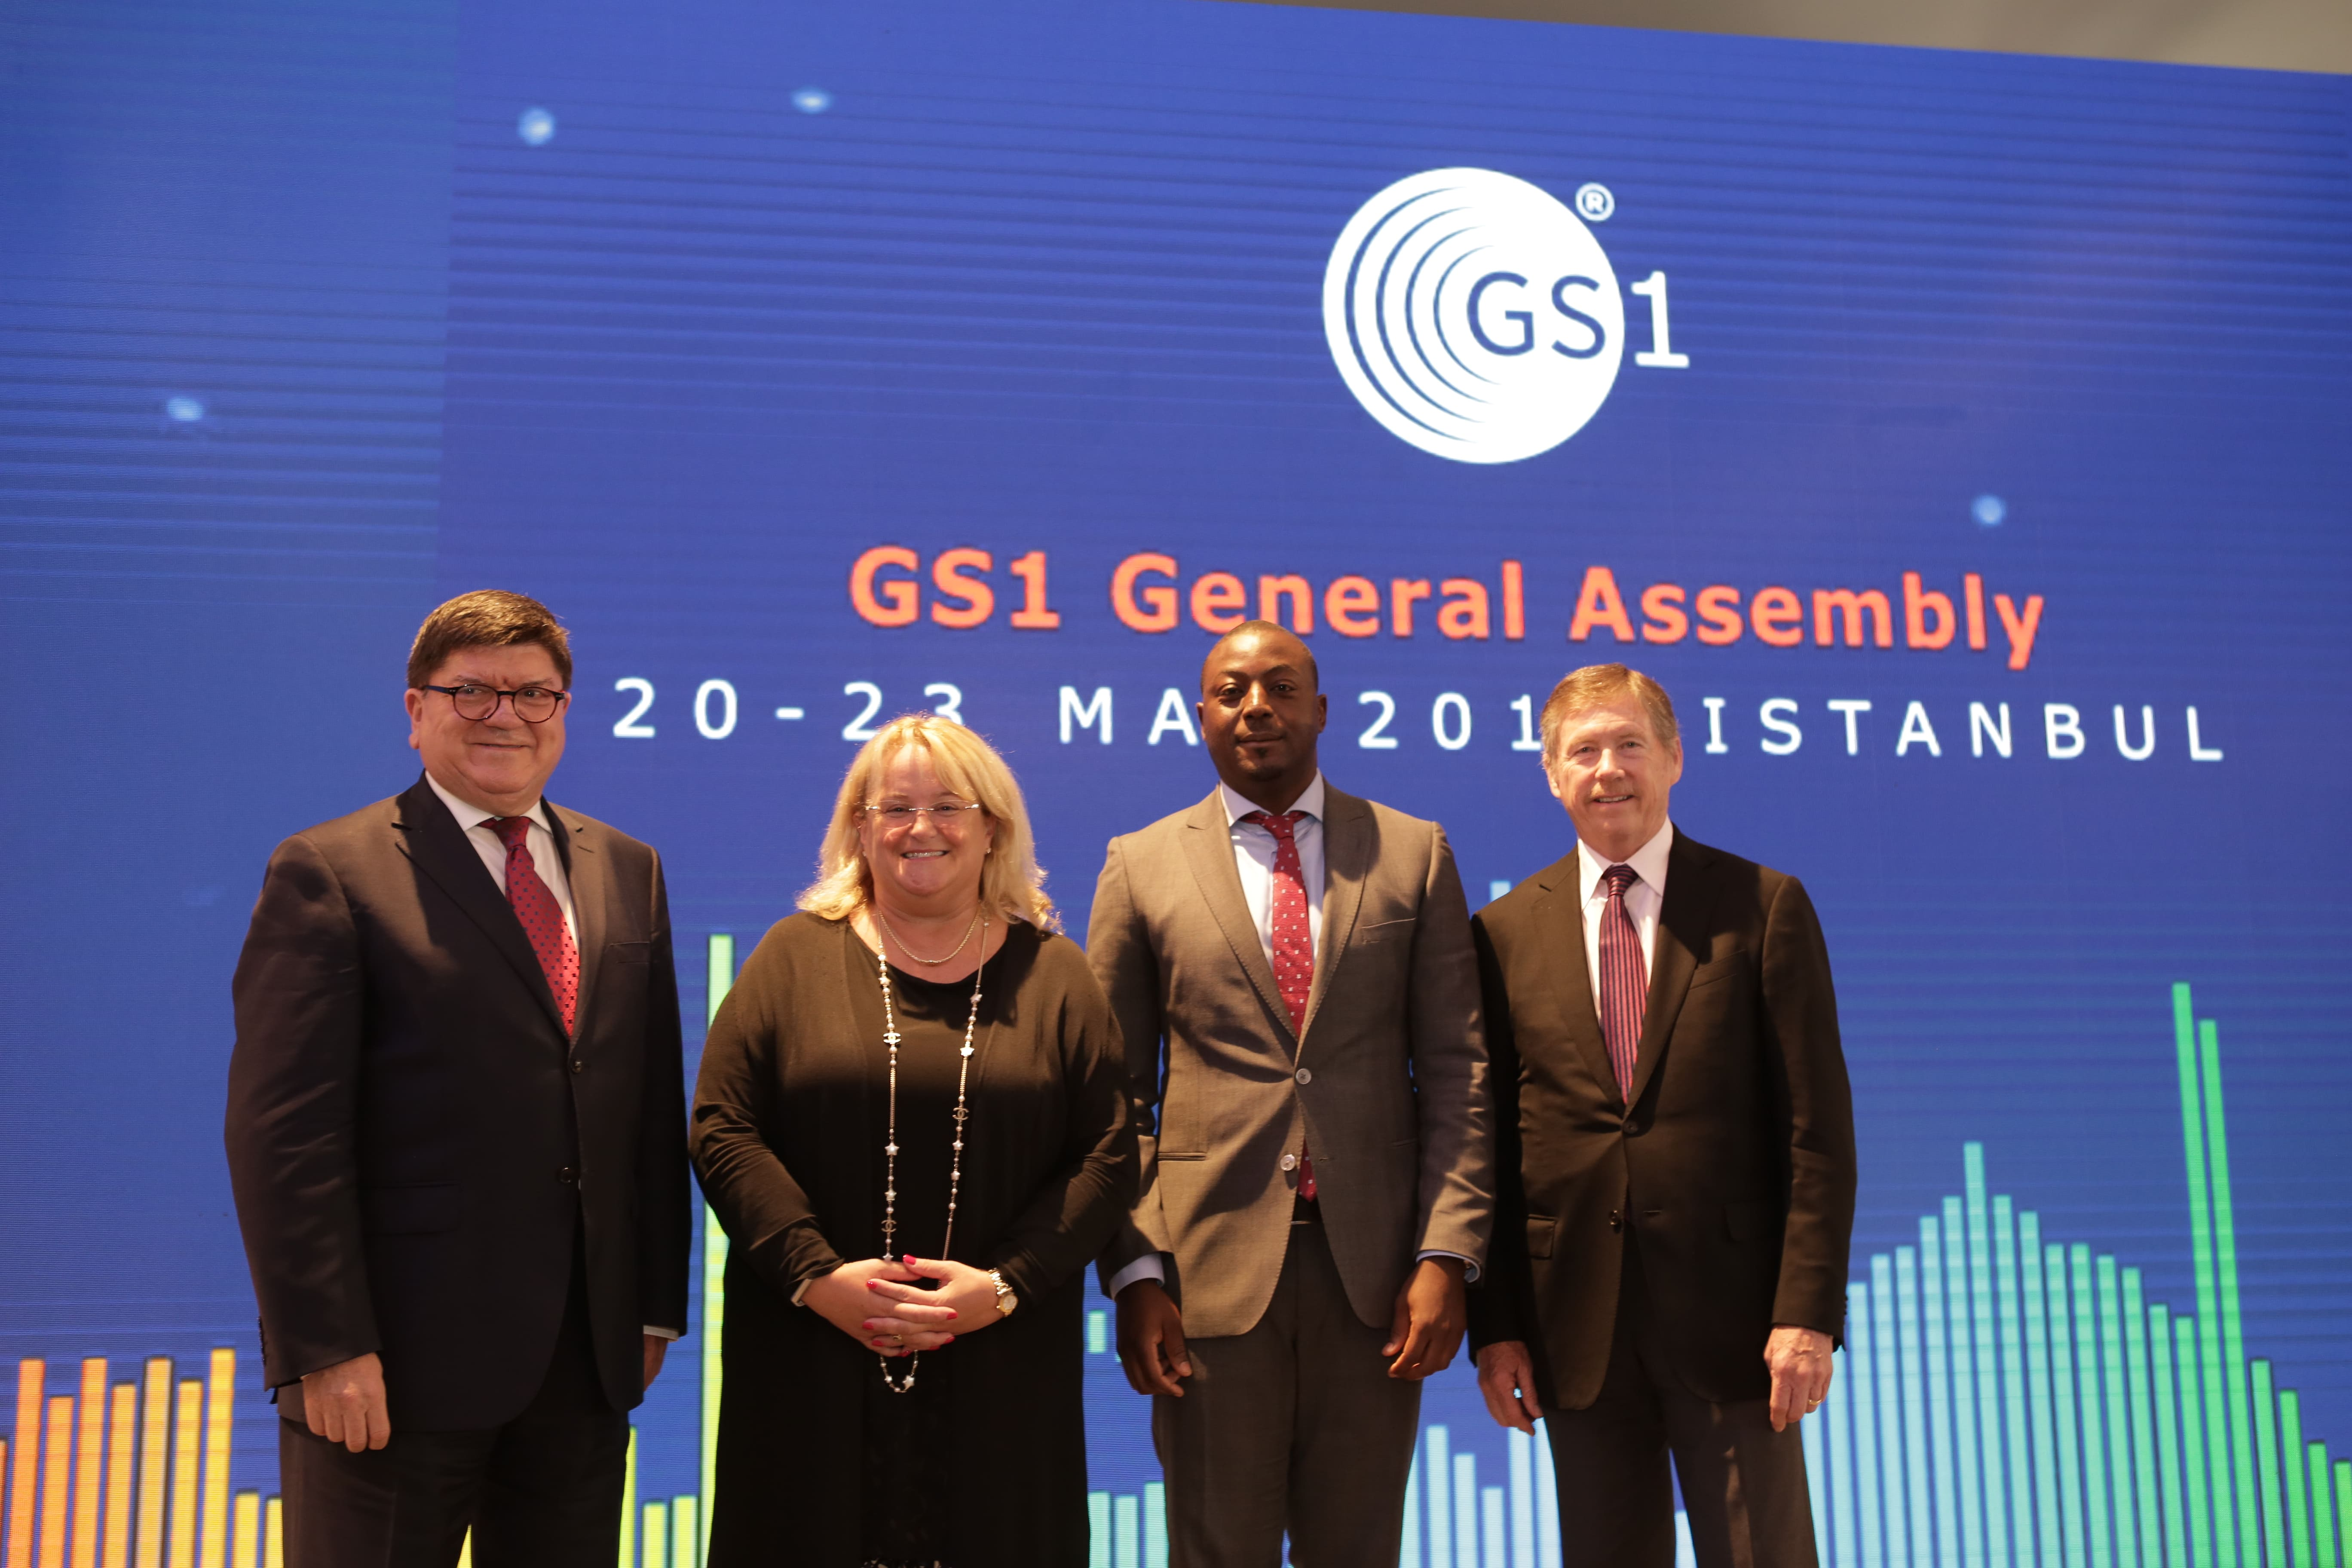 Cameroon at General Assembly